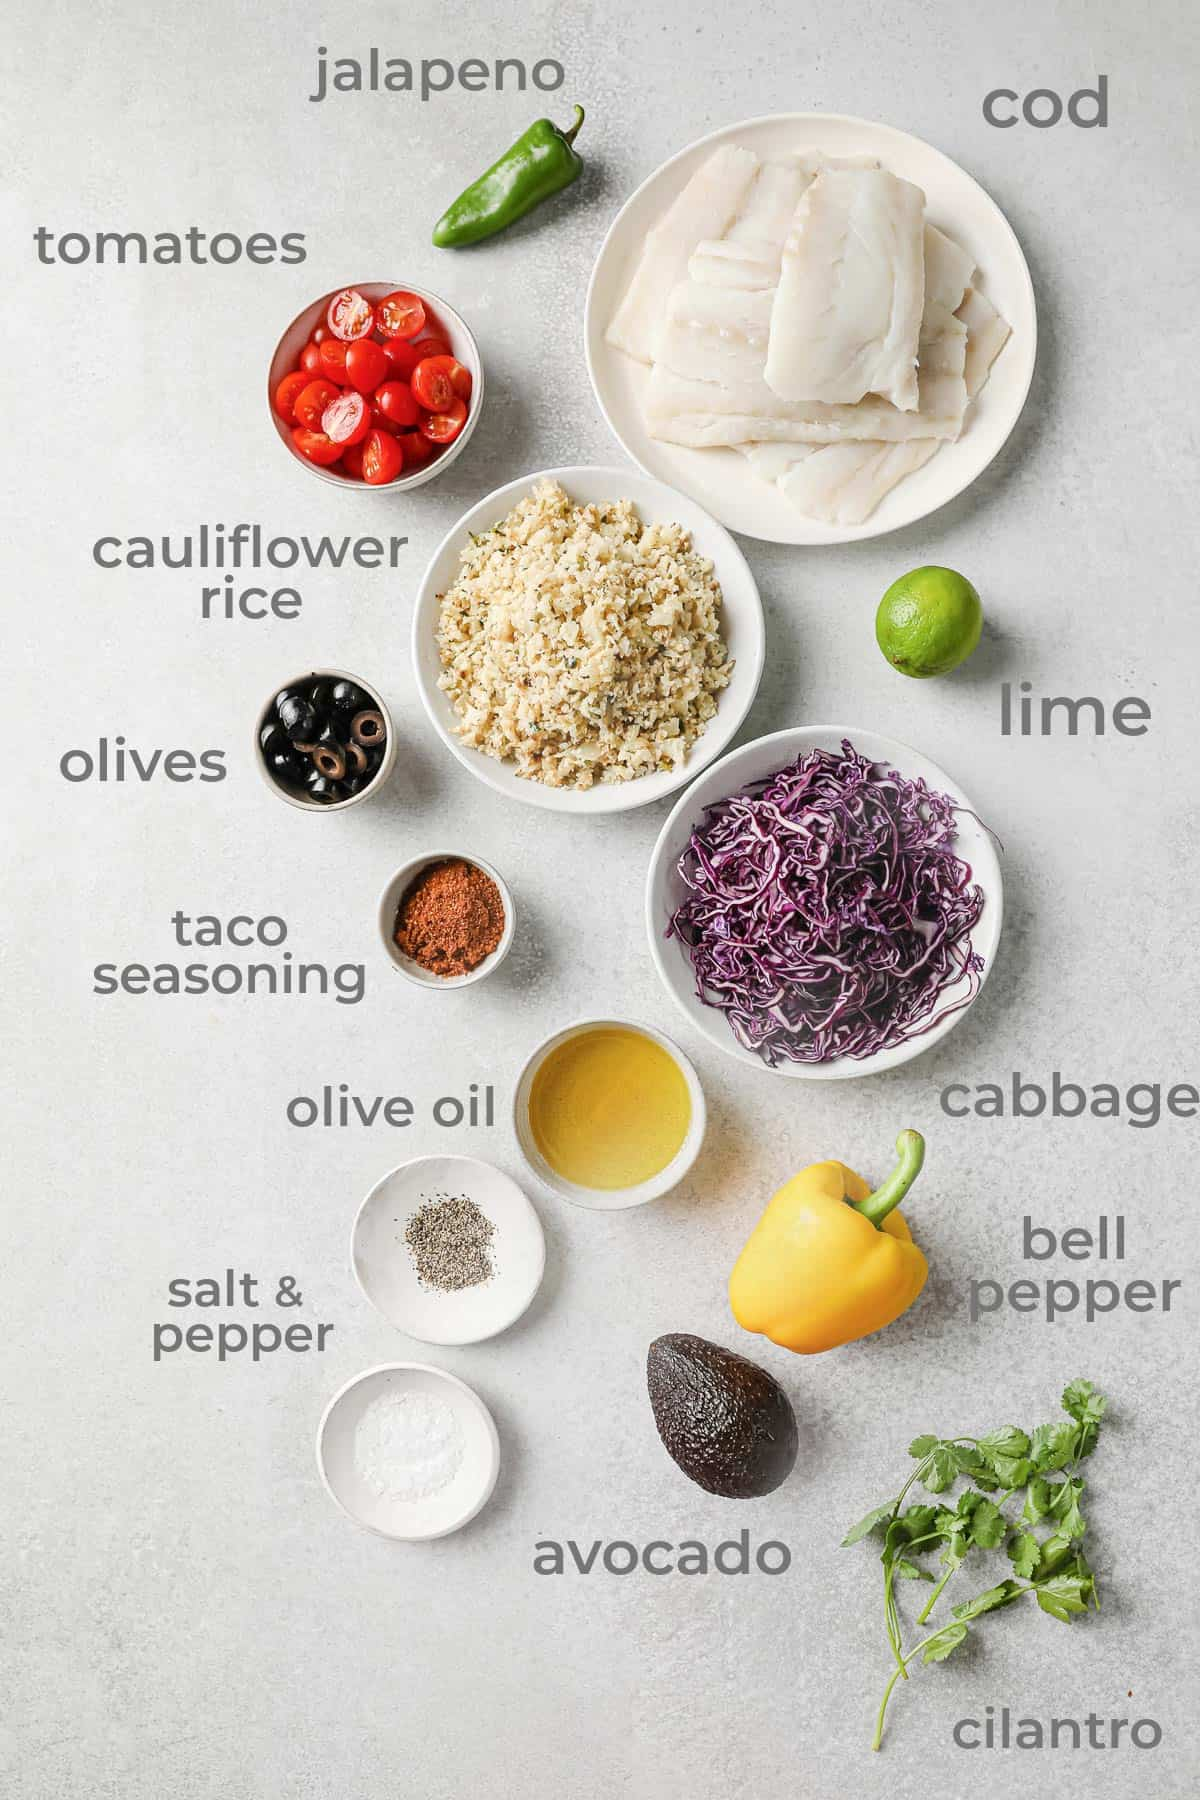 Ingredients for fish taco bowls - cod, cabbage, peppers, avocado, cilantro, limes, tomatoes taco seasoning